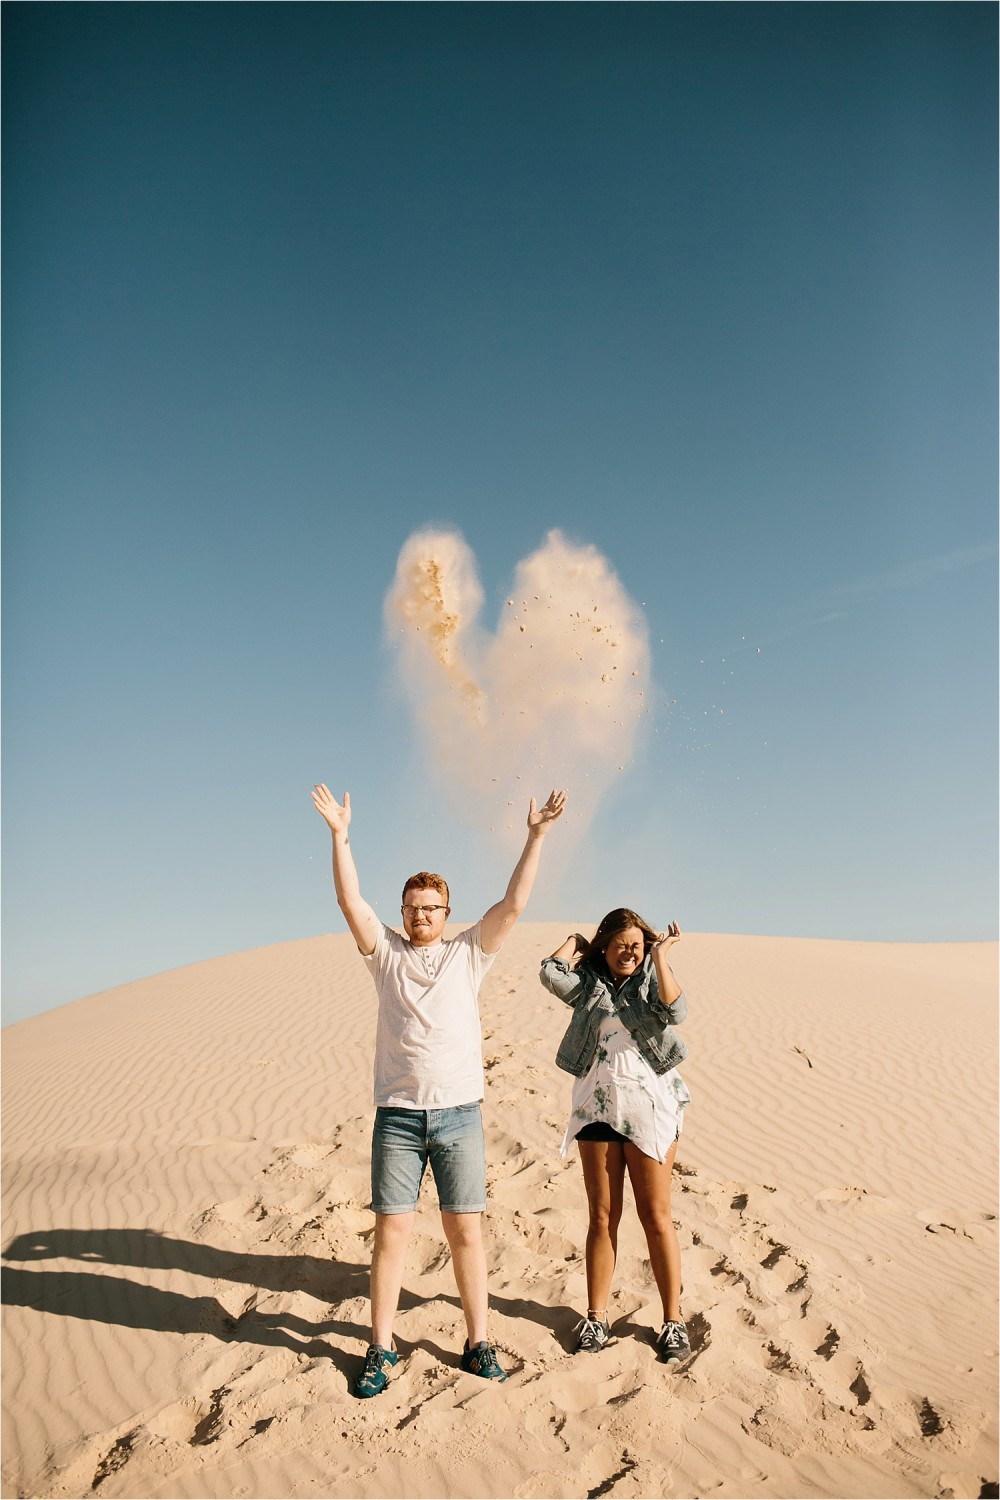 Lauren + Jacob __ a monahans sand dunes engagement session at sunrise by North Texas Wedding Photographer, Rachel Meagan Photography __ 52